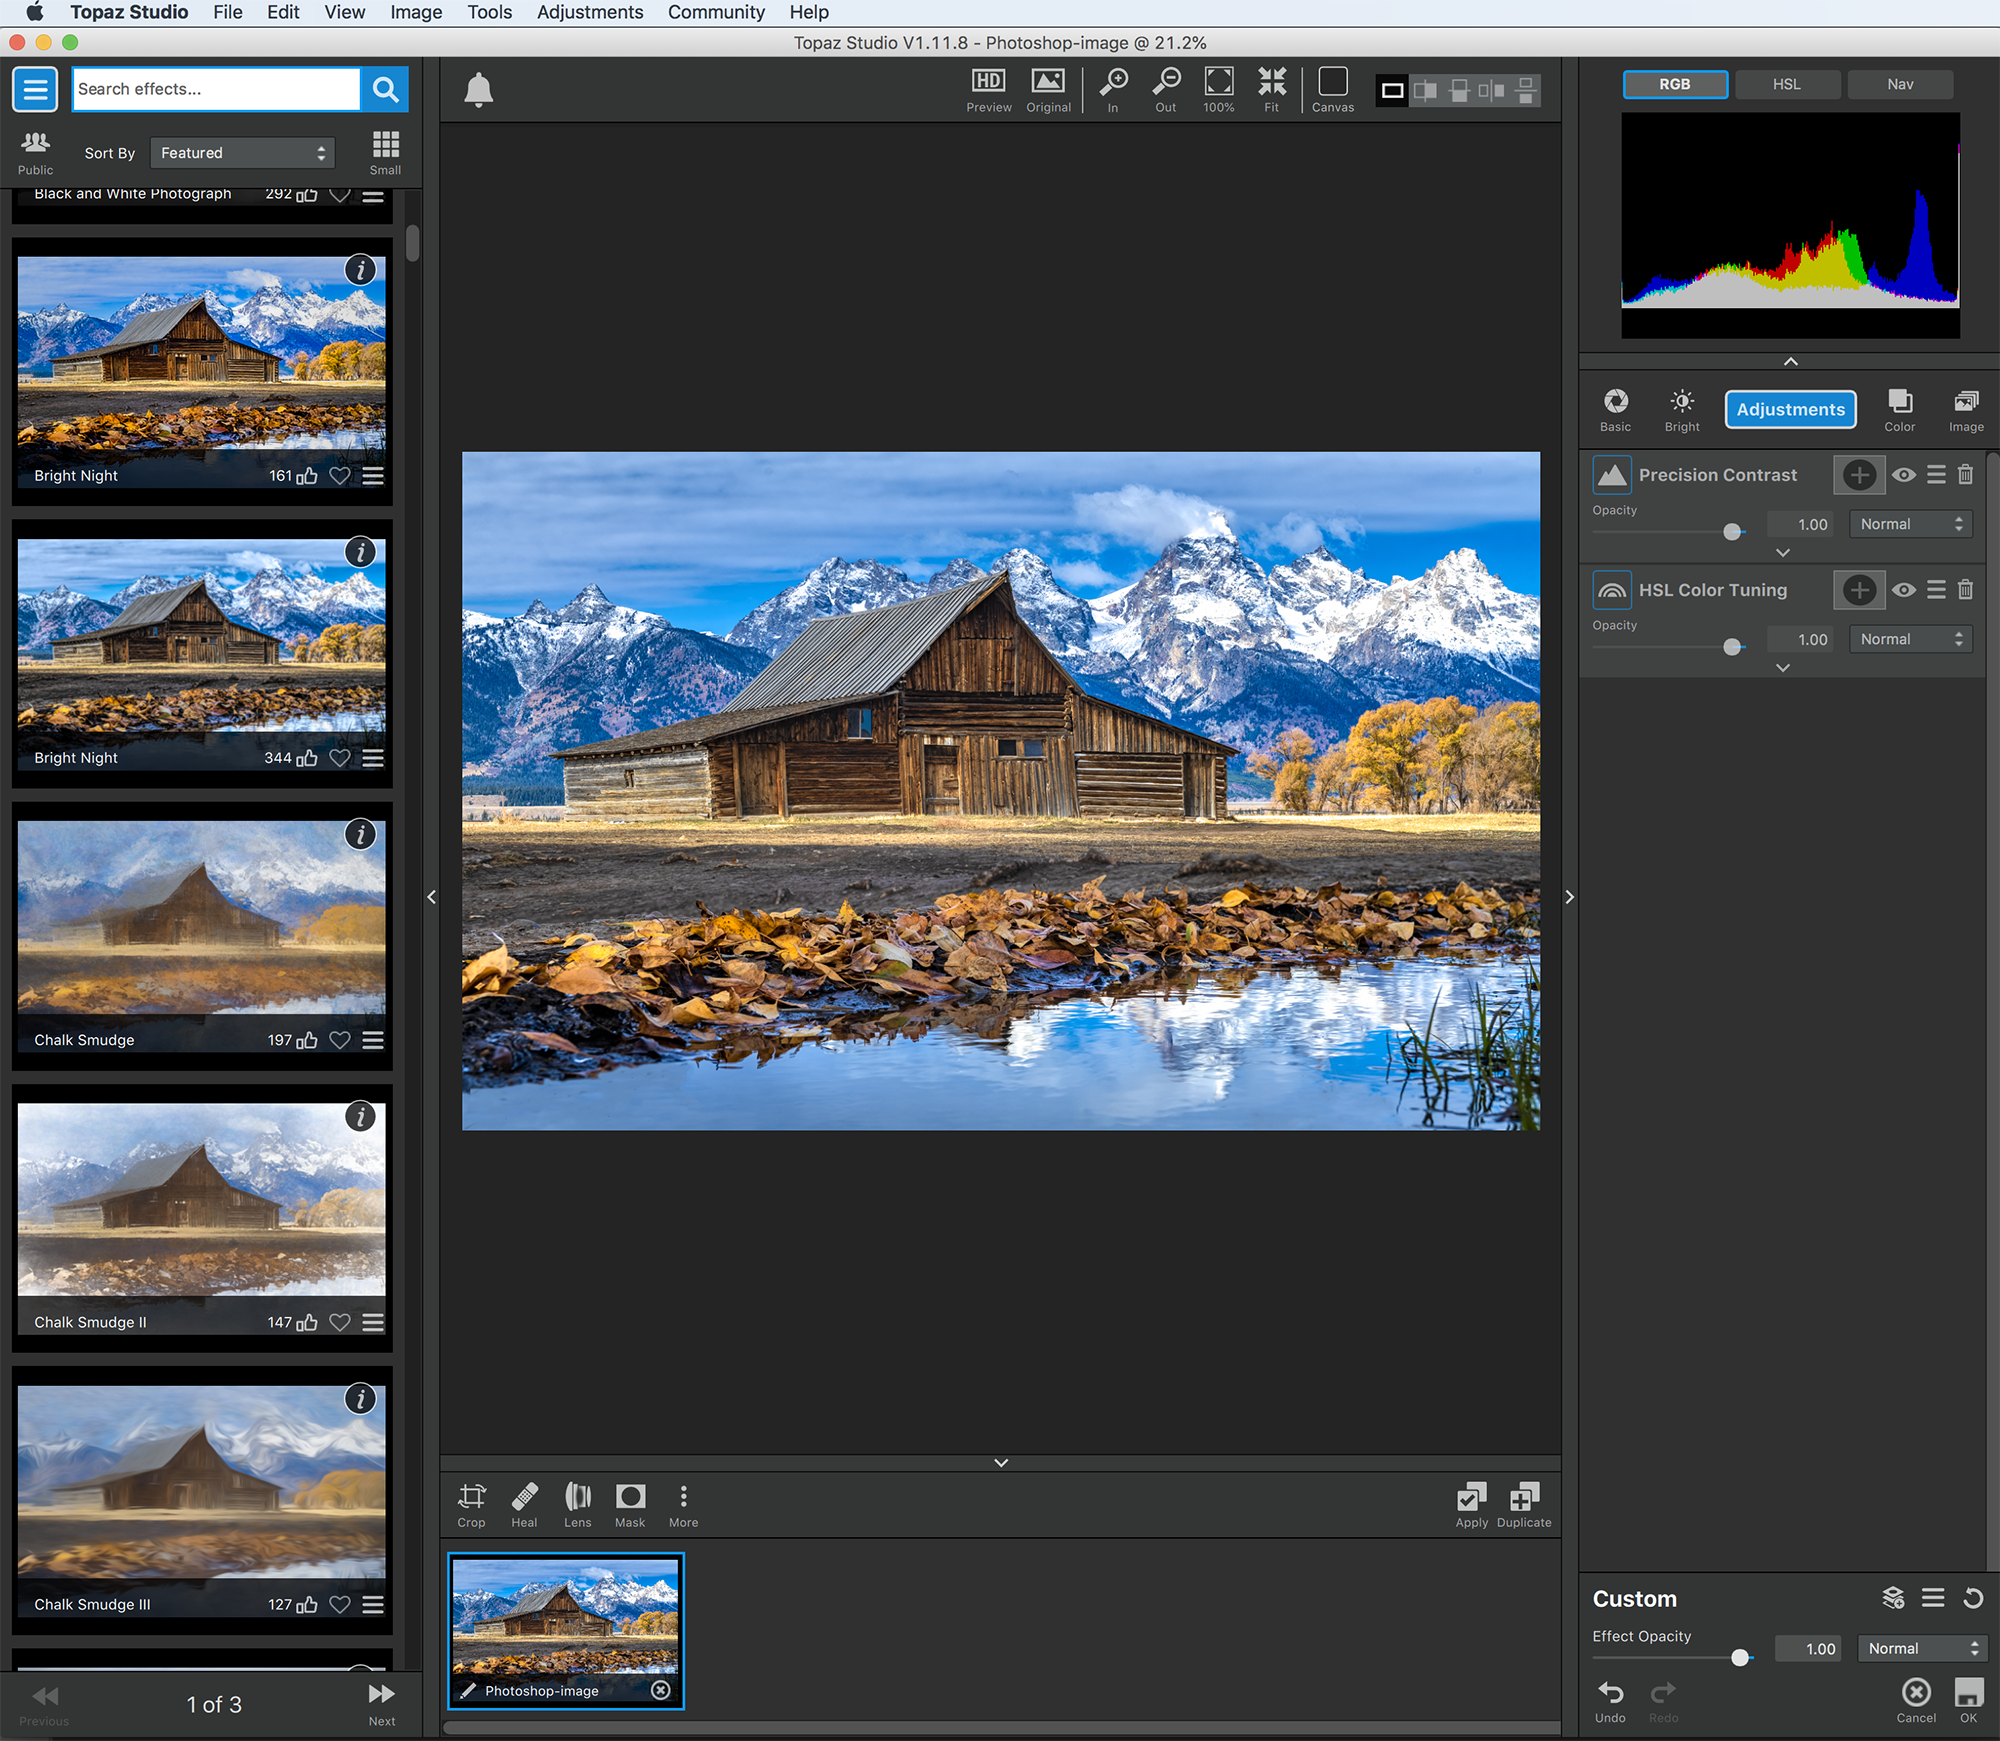 Tips for challenging photos in Grand Teton National Park